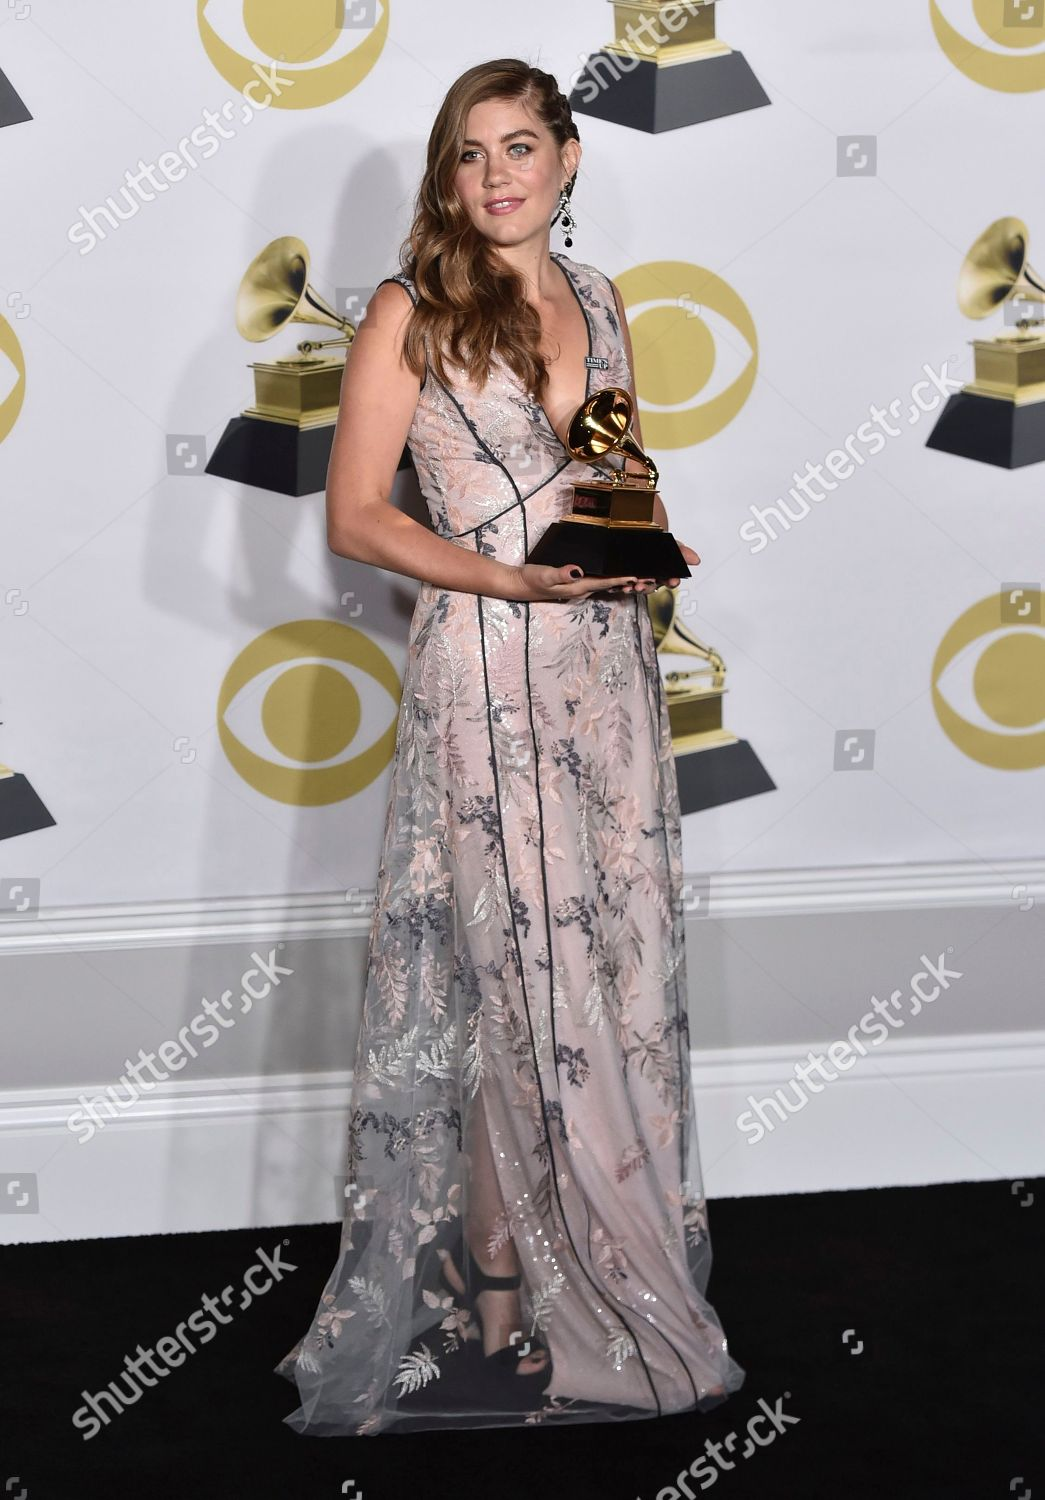 60th-annual-grammy-awards-press-room-new-york-usa-28-jan-2018